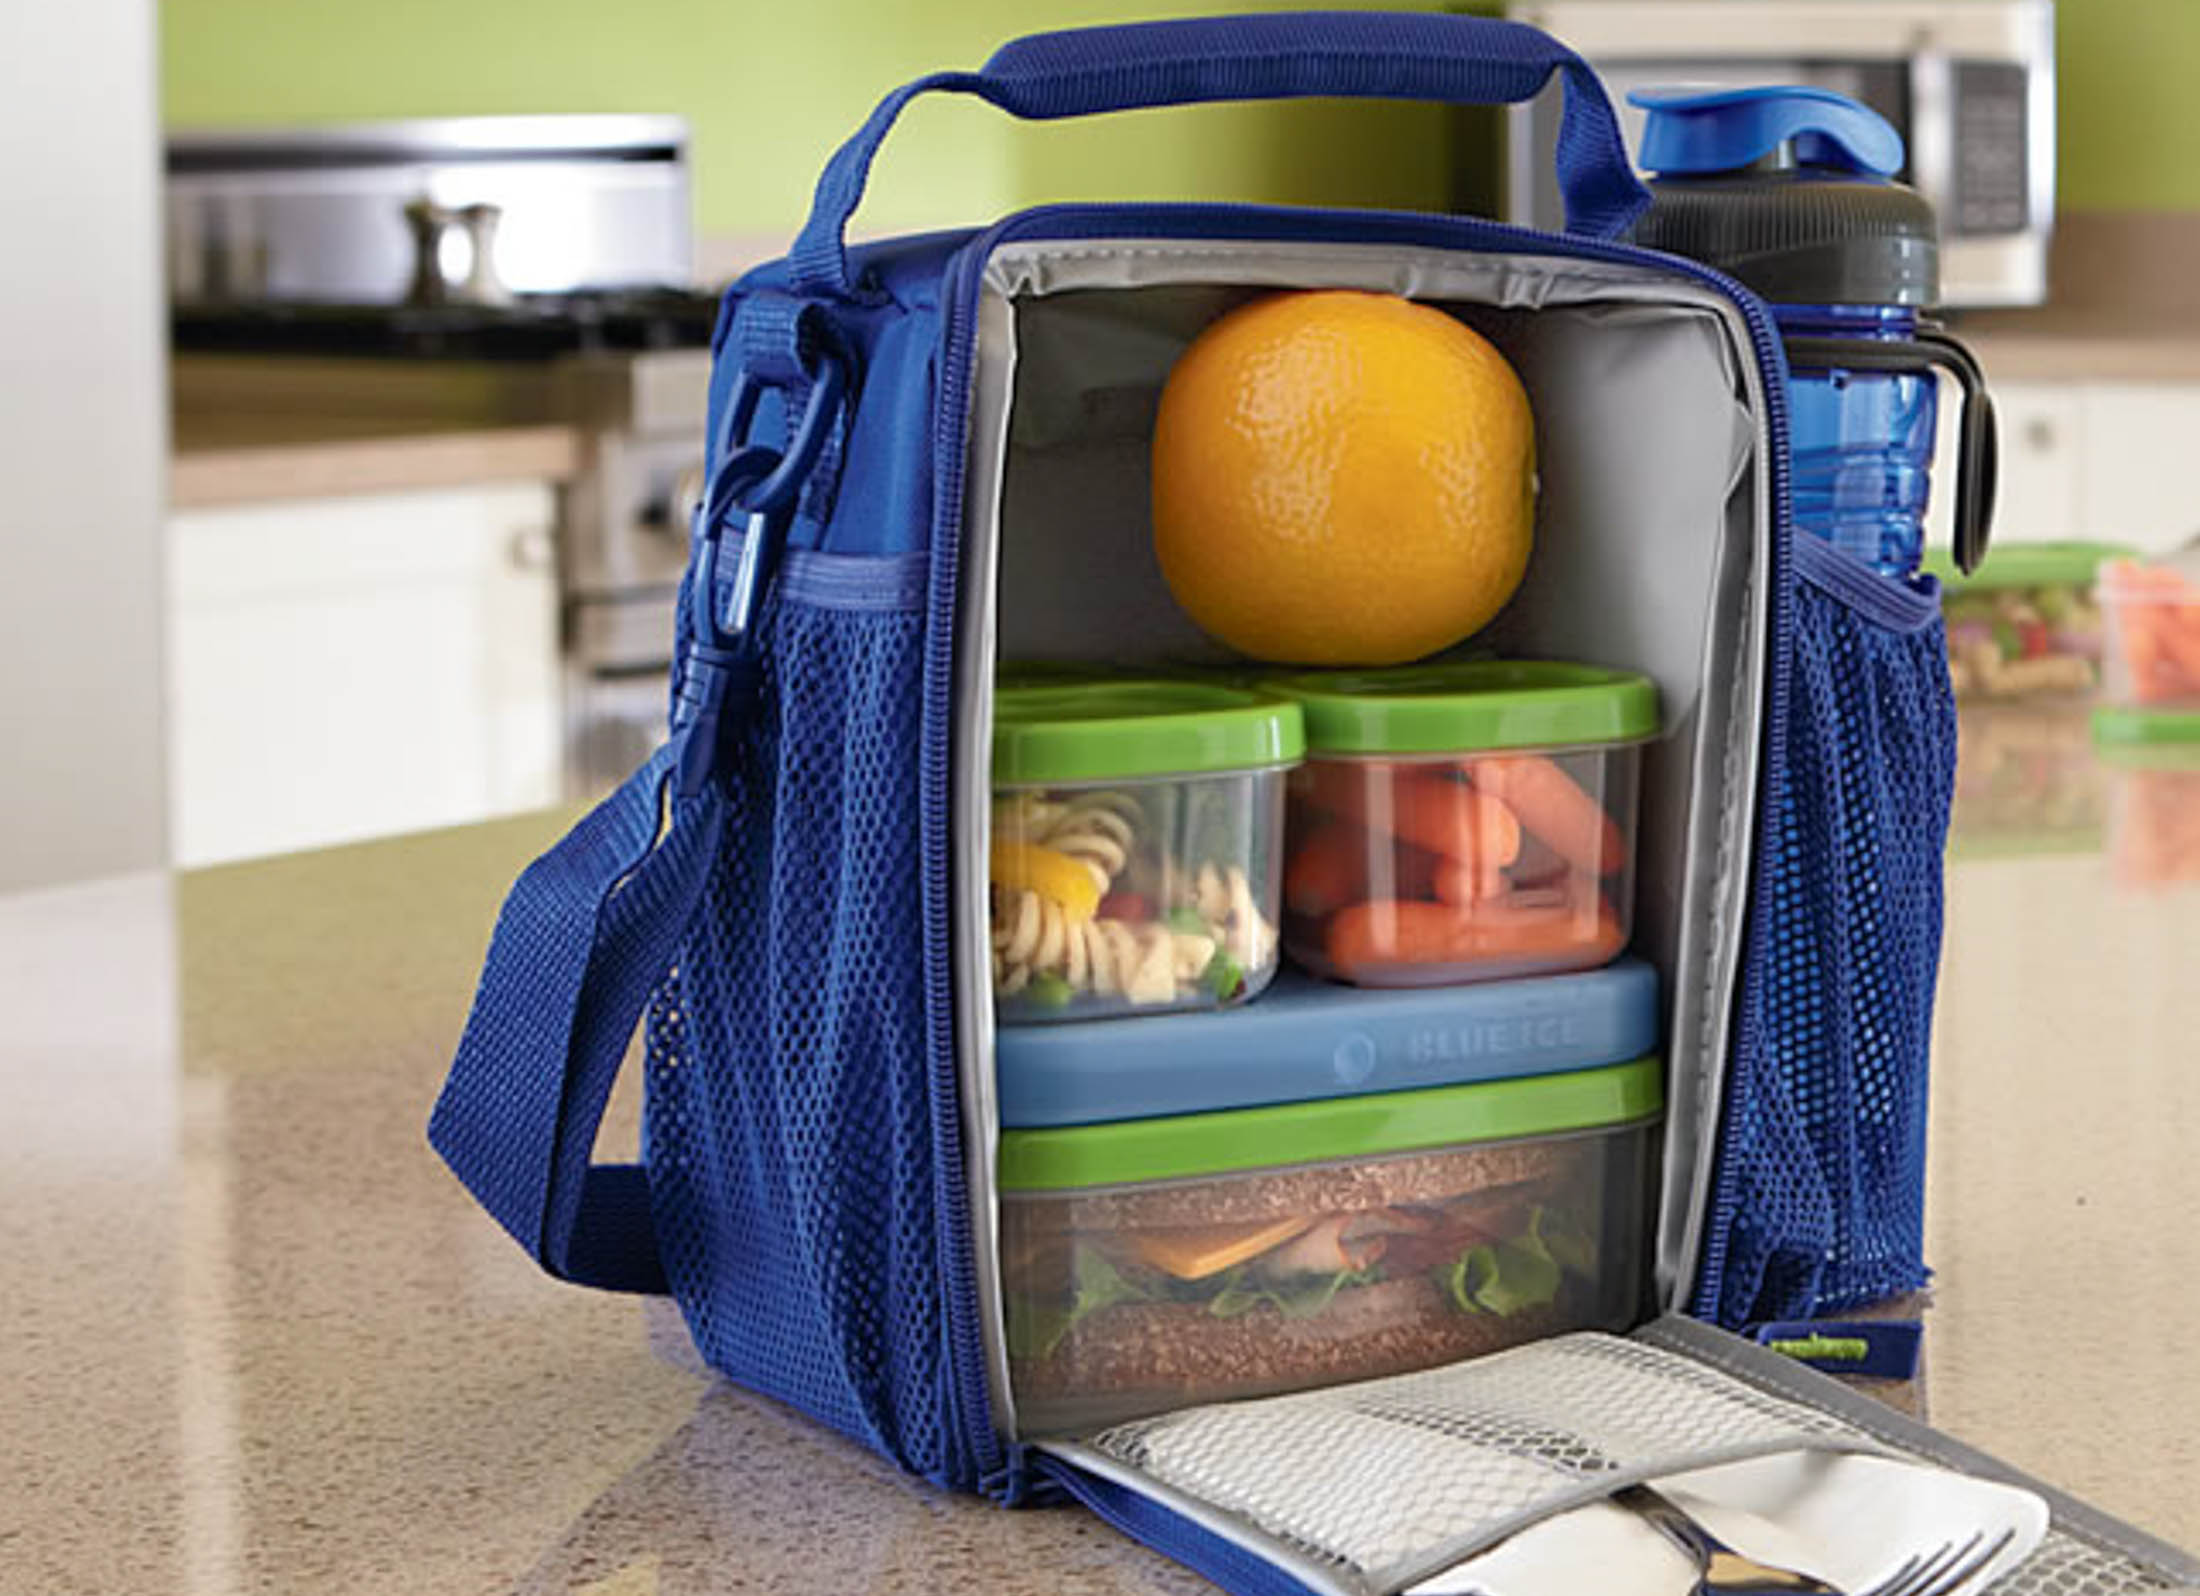 The lunchbox is partially because I am too cheap to buy the meal plan, but who can blame me? Even the commuter option is thousands of dollars. (Rubbermaid Products/Flickr Creative Commons)